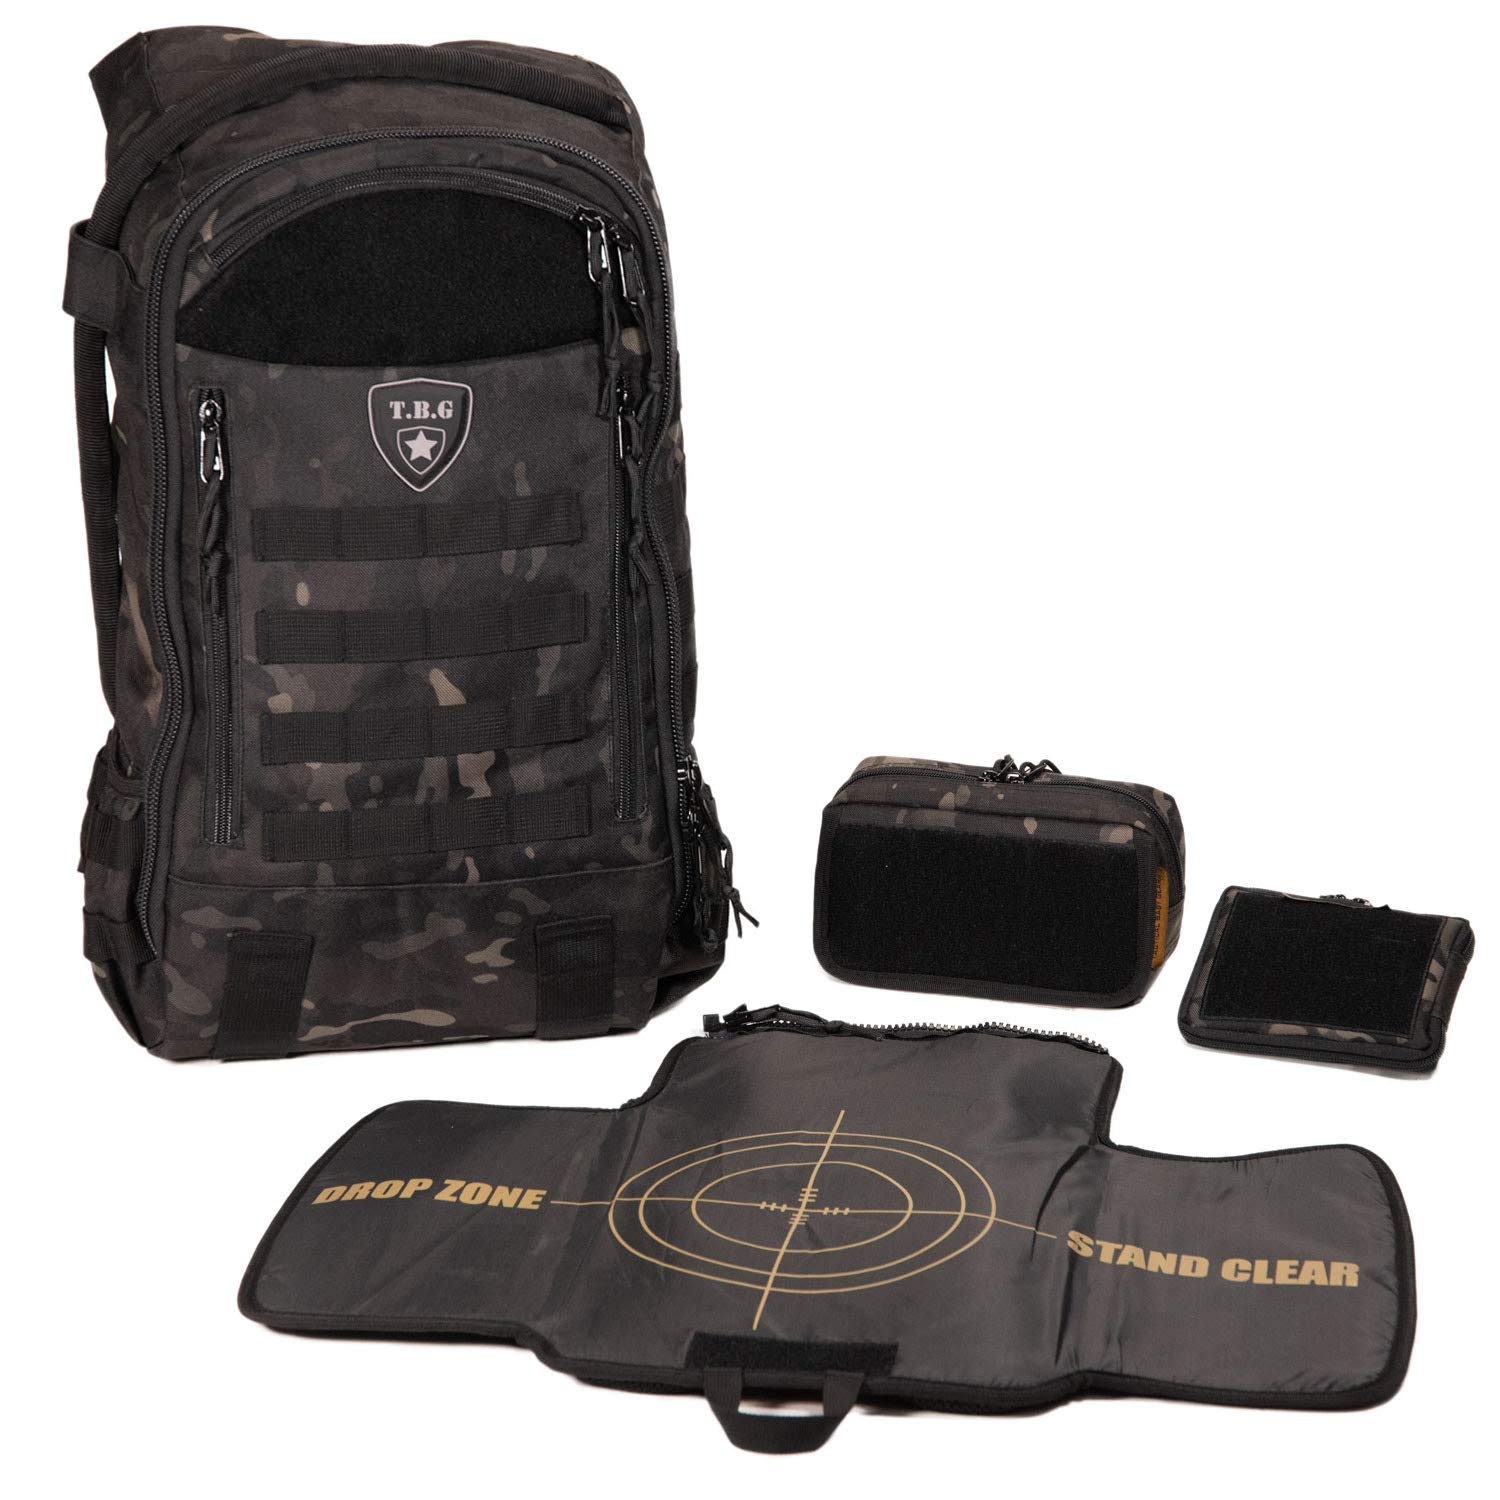 8d32d8b838a0 Amazon.com   Tactical Baby Gear Daypack 3.0 Tactical Diaper Bag Backpack  Combo Set (Black Camo)   Baby